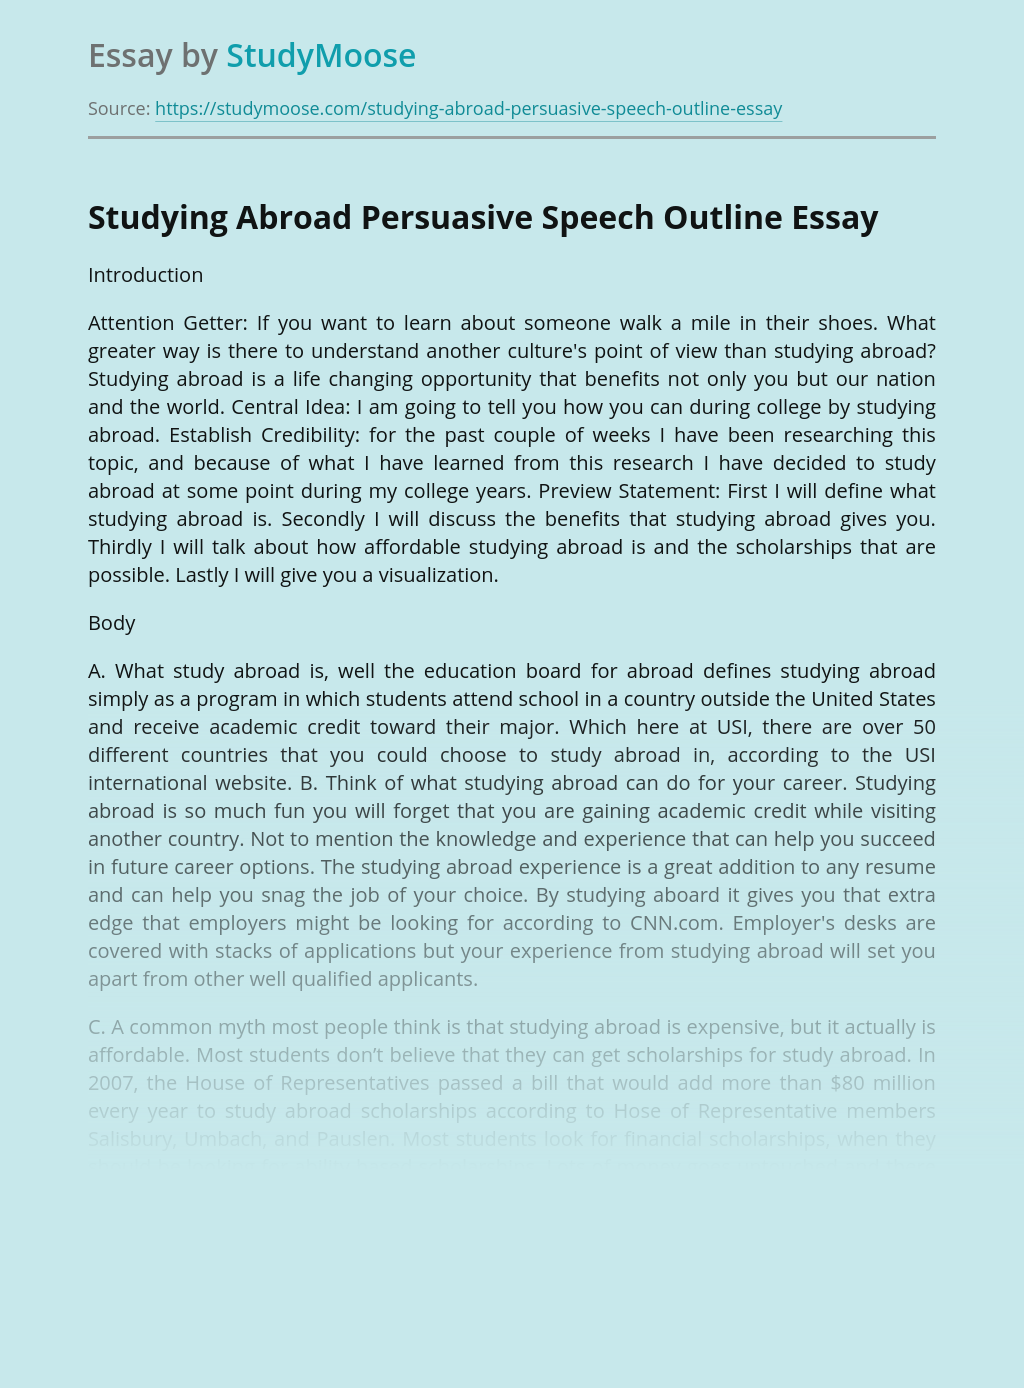 Studying Abroad Persuasive Speech Outline